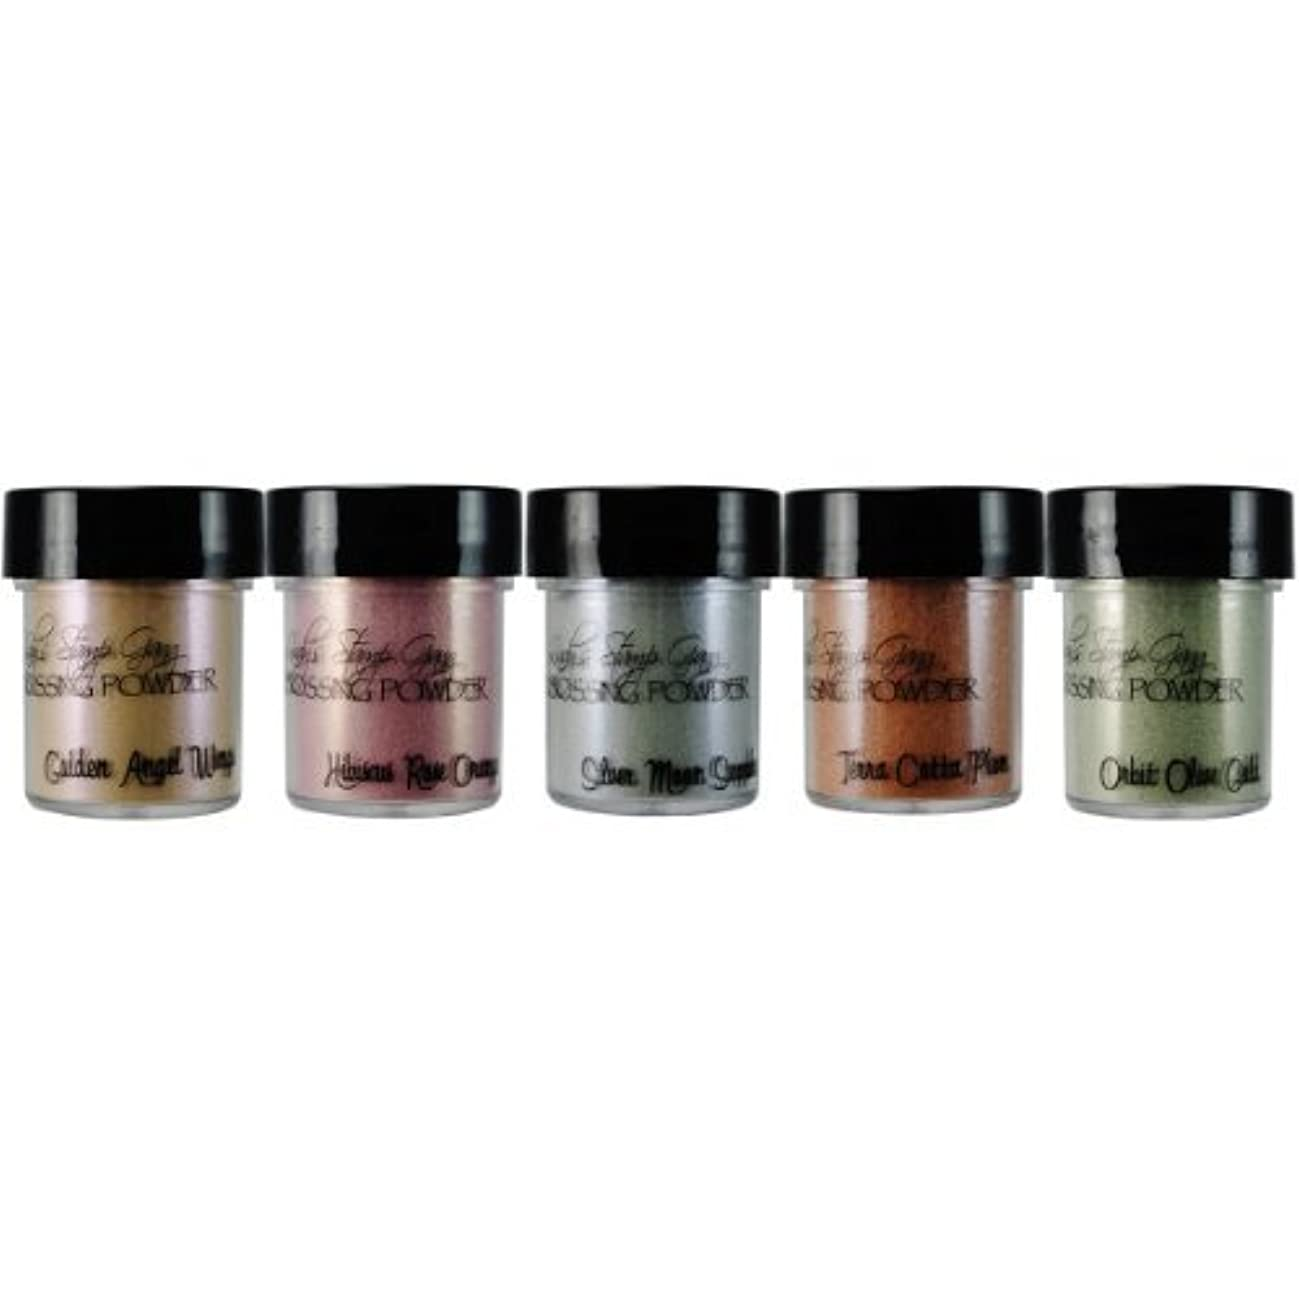 Lindy's Stamp Gang 2-Tone Embossing Powder, 0.5-Ounce, Nantucket Pearls, 5 Per Package